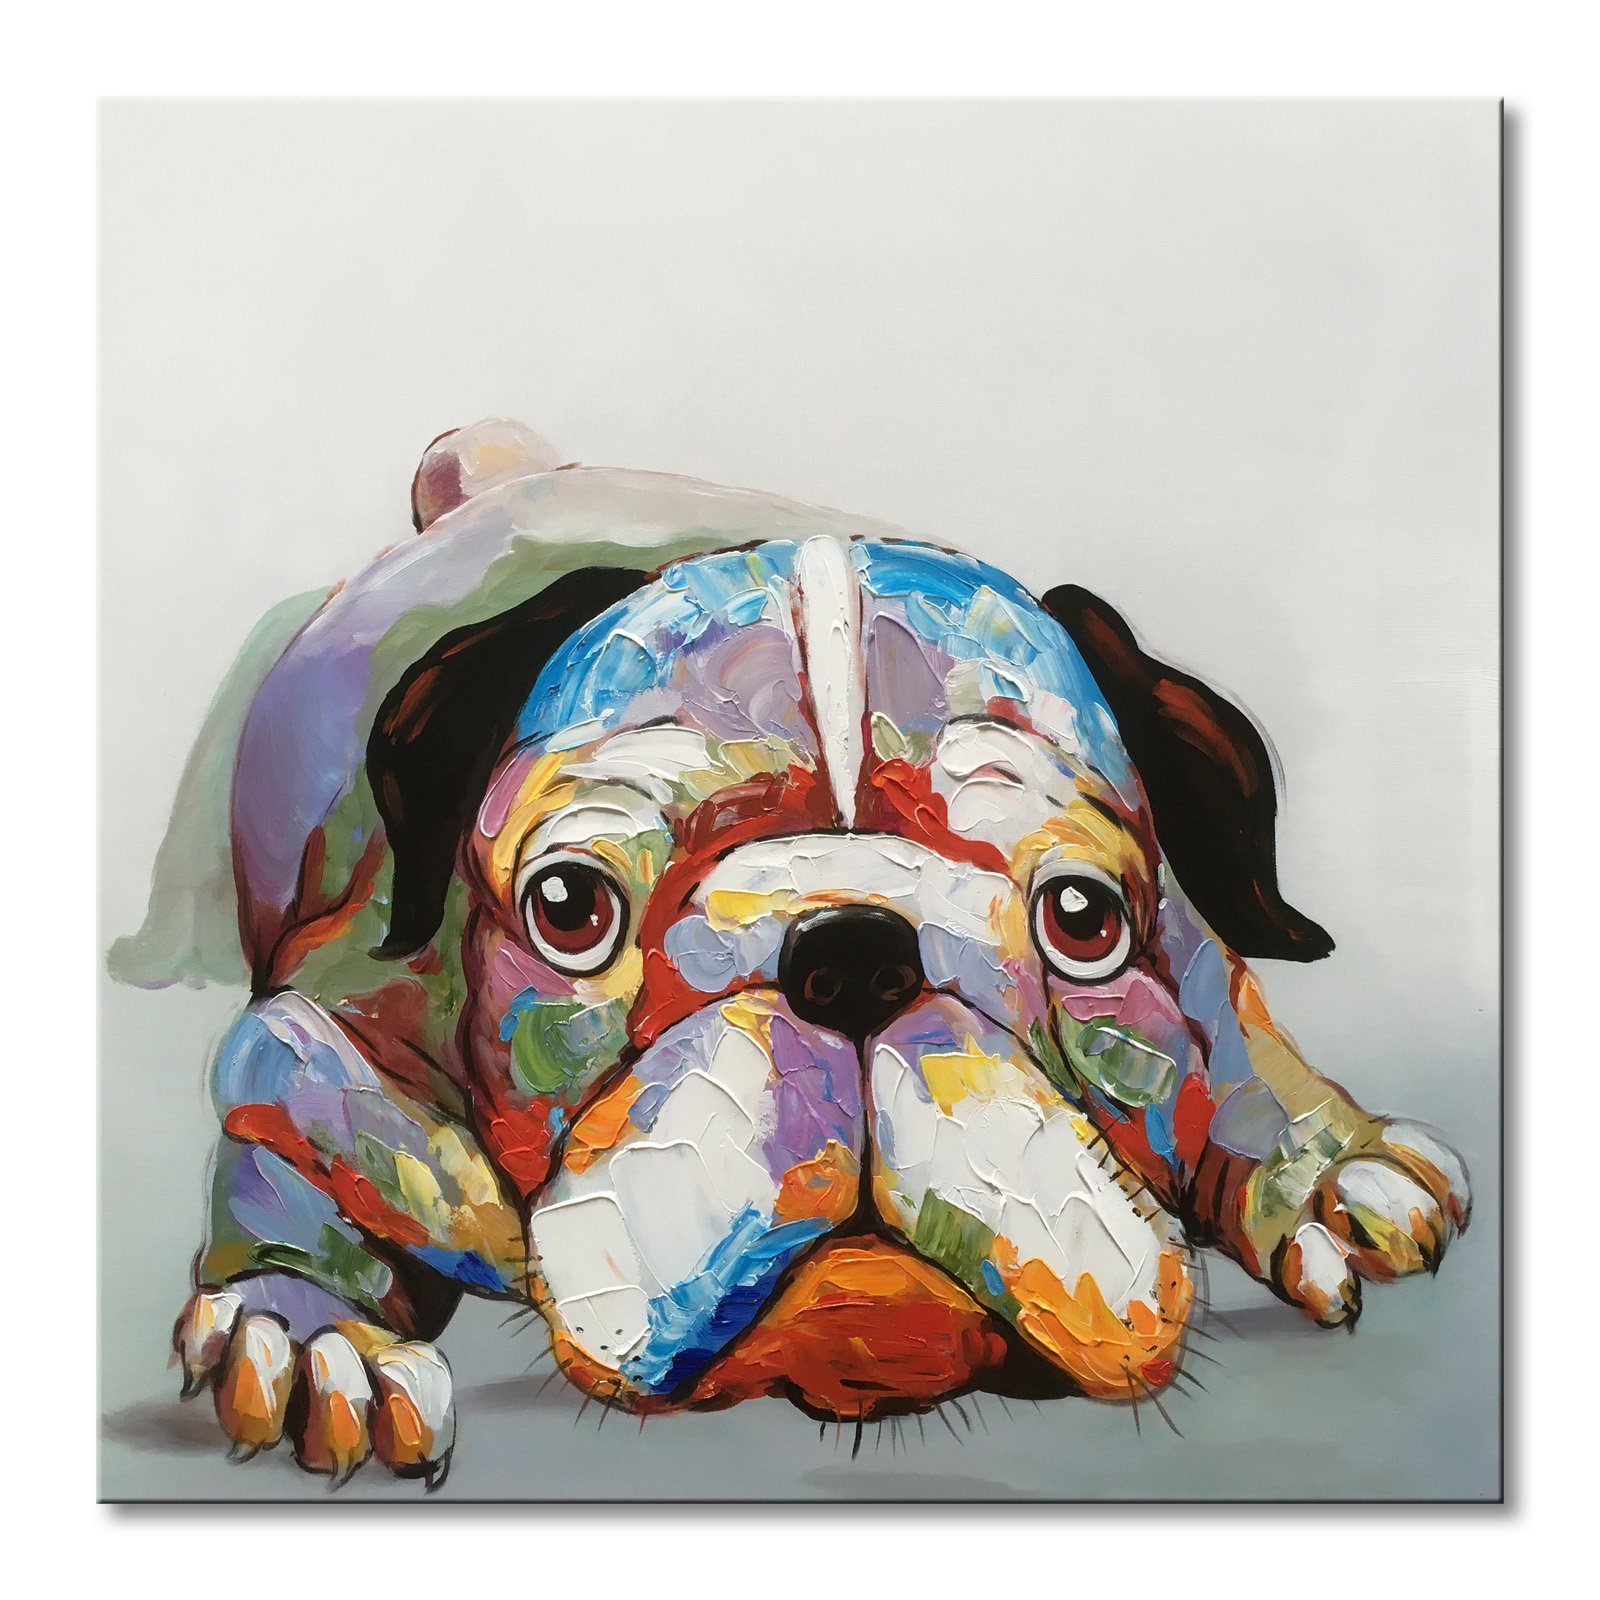 Everfun Animal Oil Painting Bulldog Hand Painted Extra Large Dog Canvas Wall Art Modern Cute Artwork Abstract Pet Cartoon Picture Funny Room Home Decoration Framed 40''Wx40''H